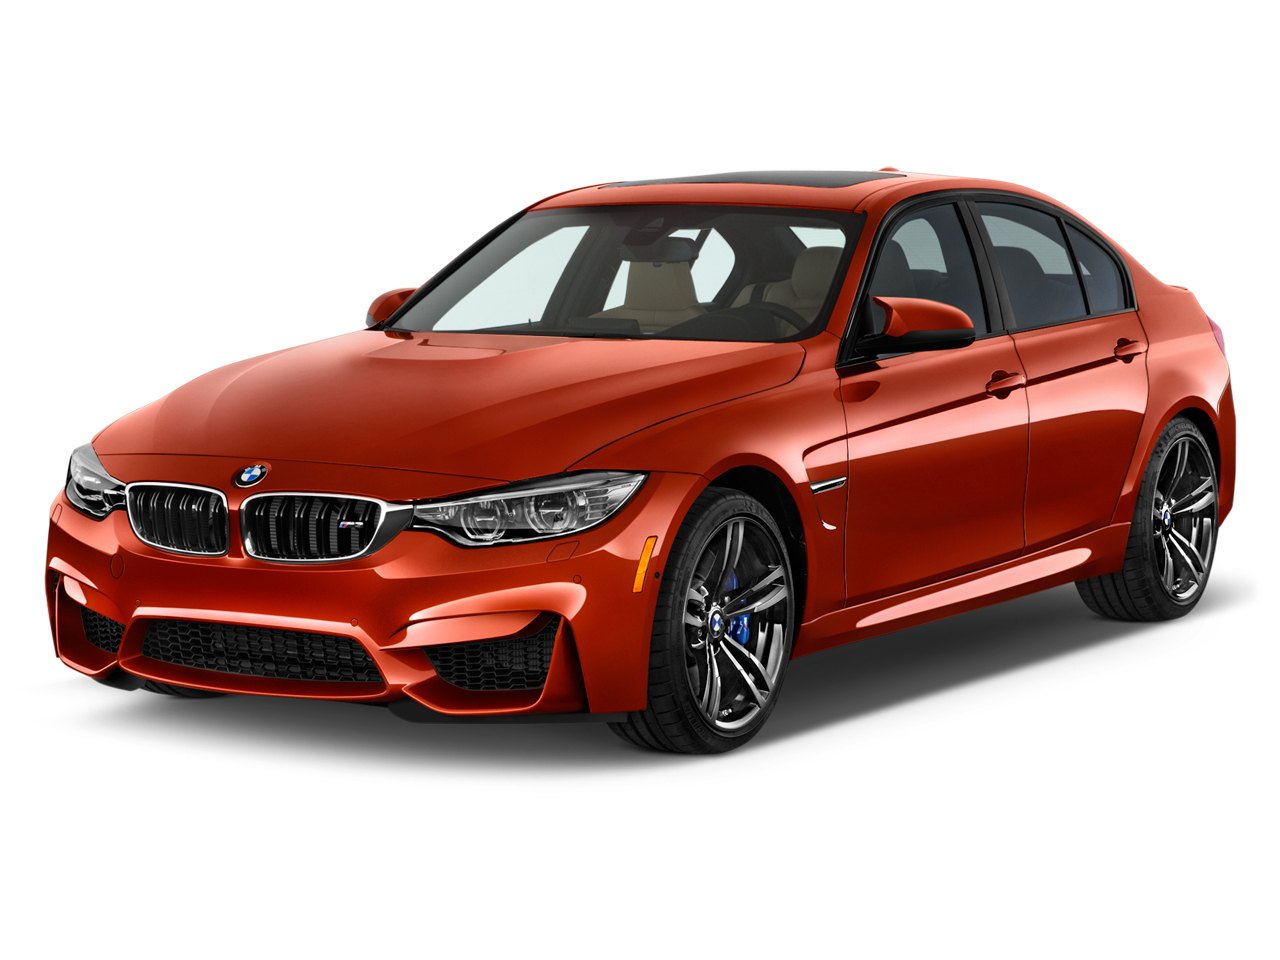 Car Features List For BMW M3 Sedan 2018 3.0T (Qatar